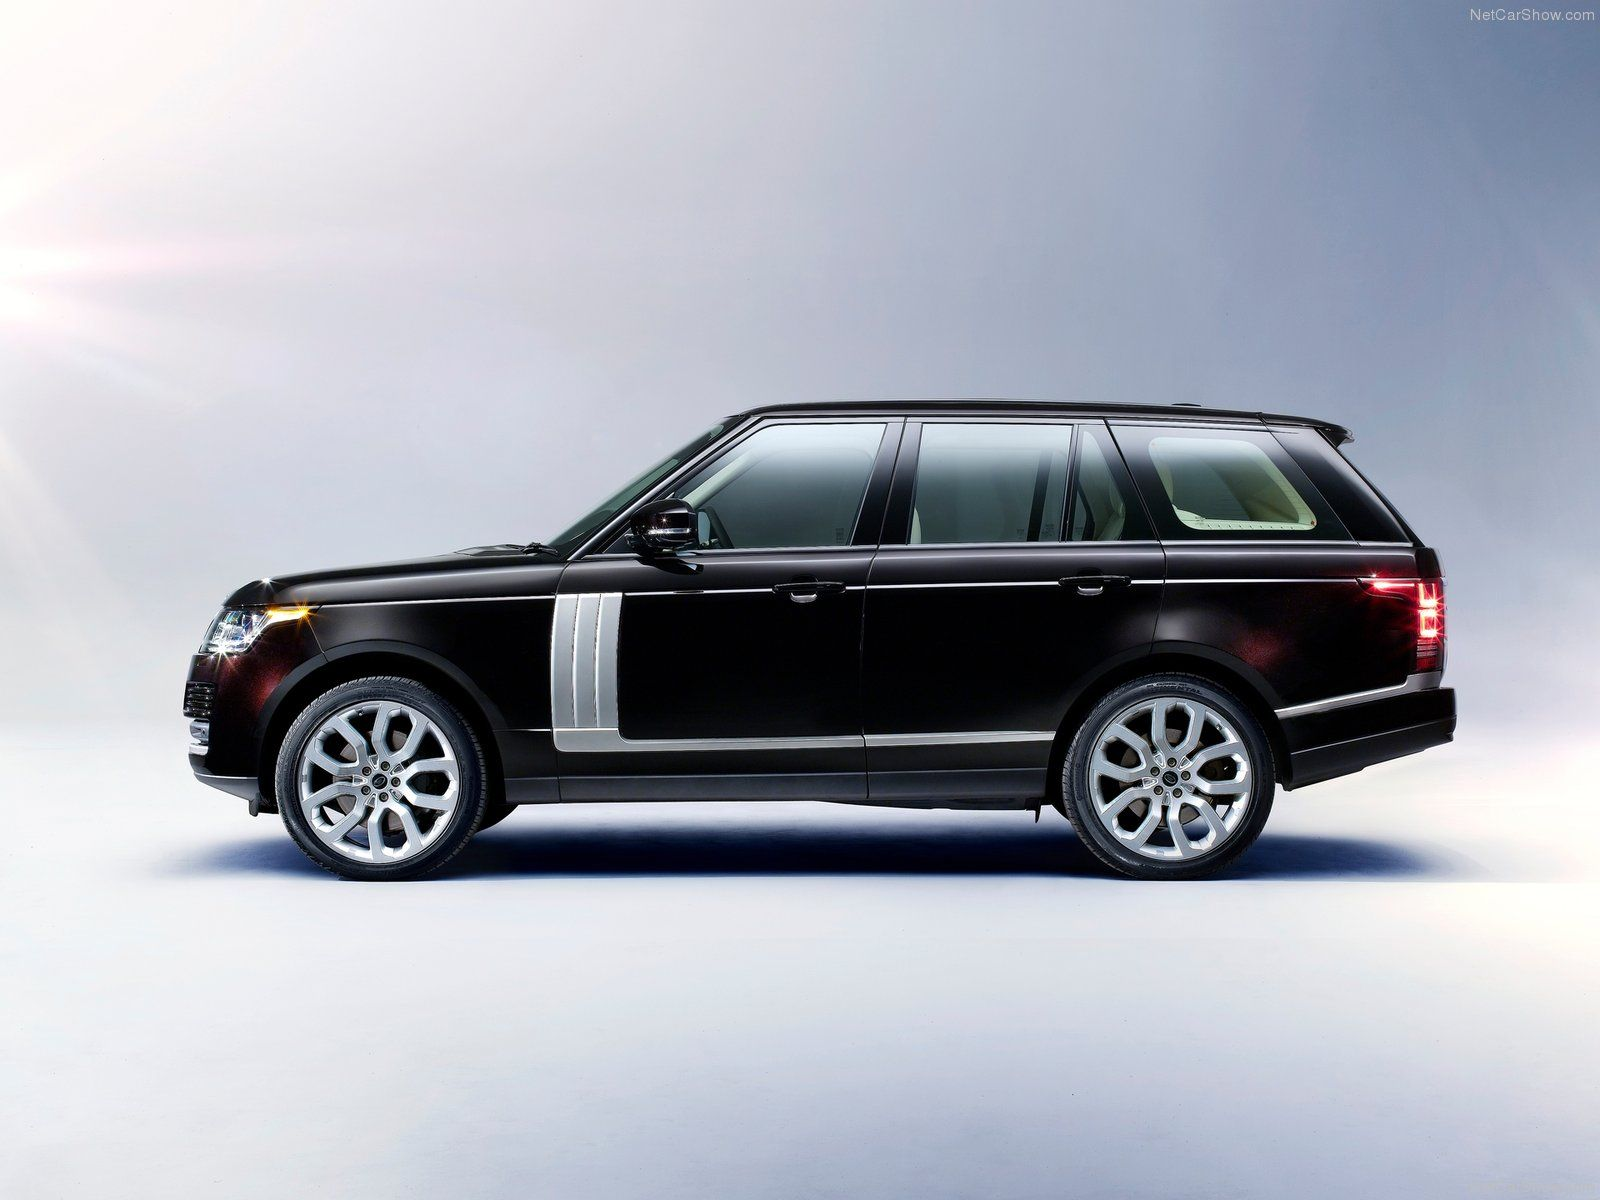 2013 Range Rover Vogue available for rental in Cote d'Azur